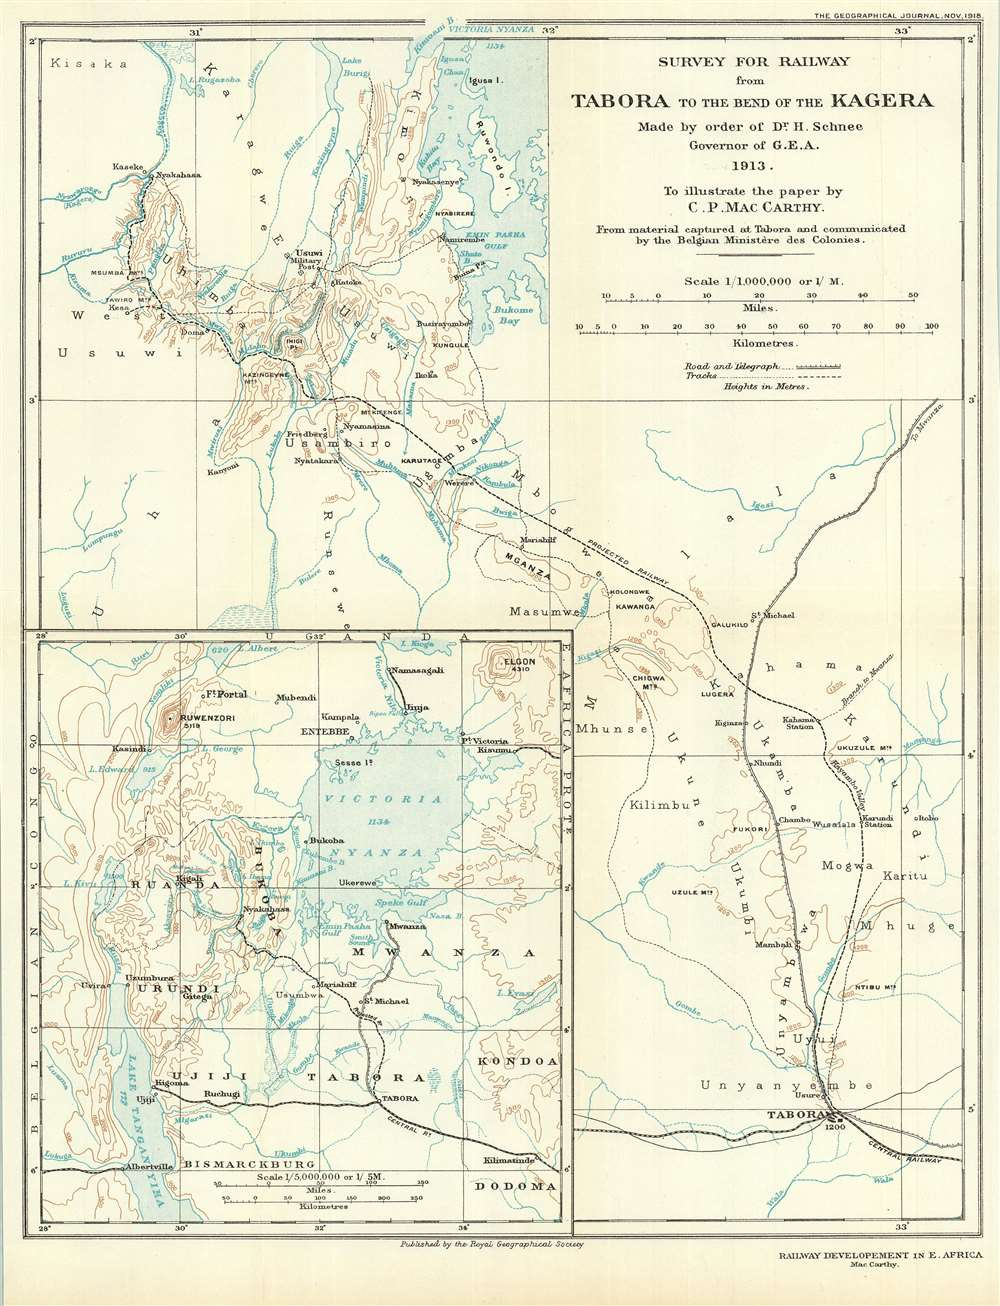 Survey for Railway from Tabora to the Bend of the Kagera. Made by Order of Dr. H. Schnee Governor of G.E.A. 1913. To Illustrate the paper by C. P. MacCarthy. - Main View